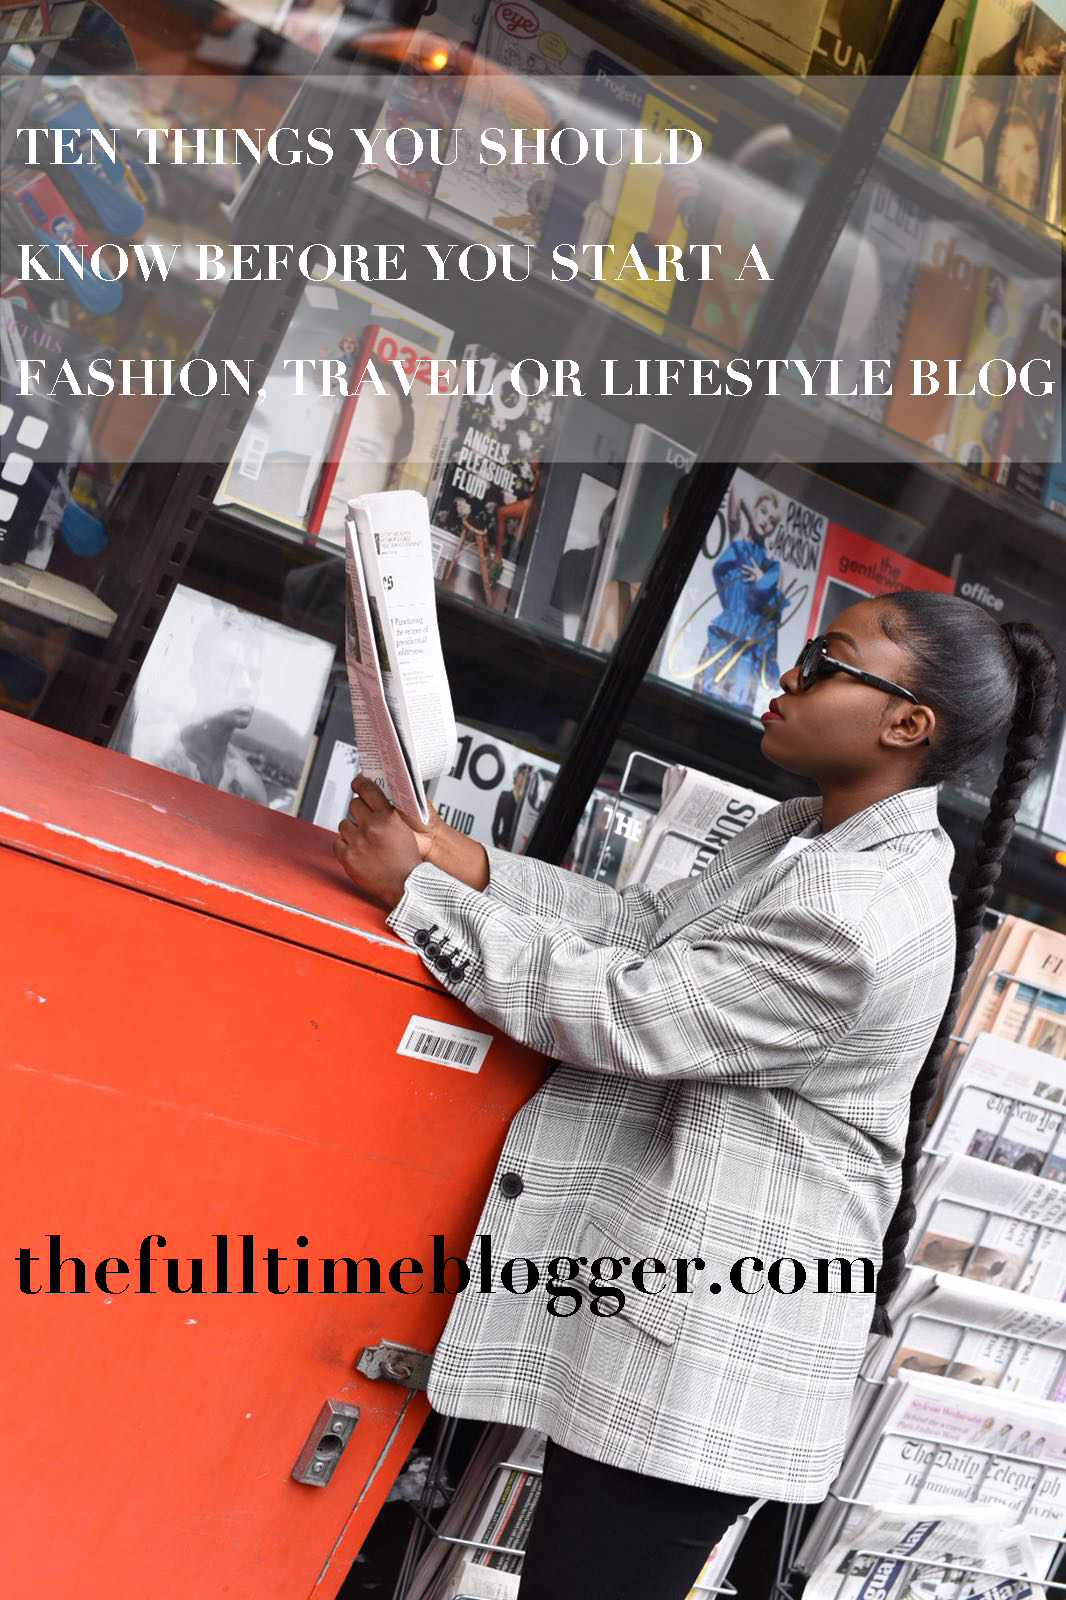 London Fashion, Travel & Personal Development